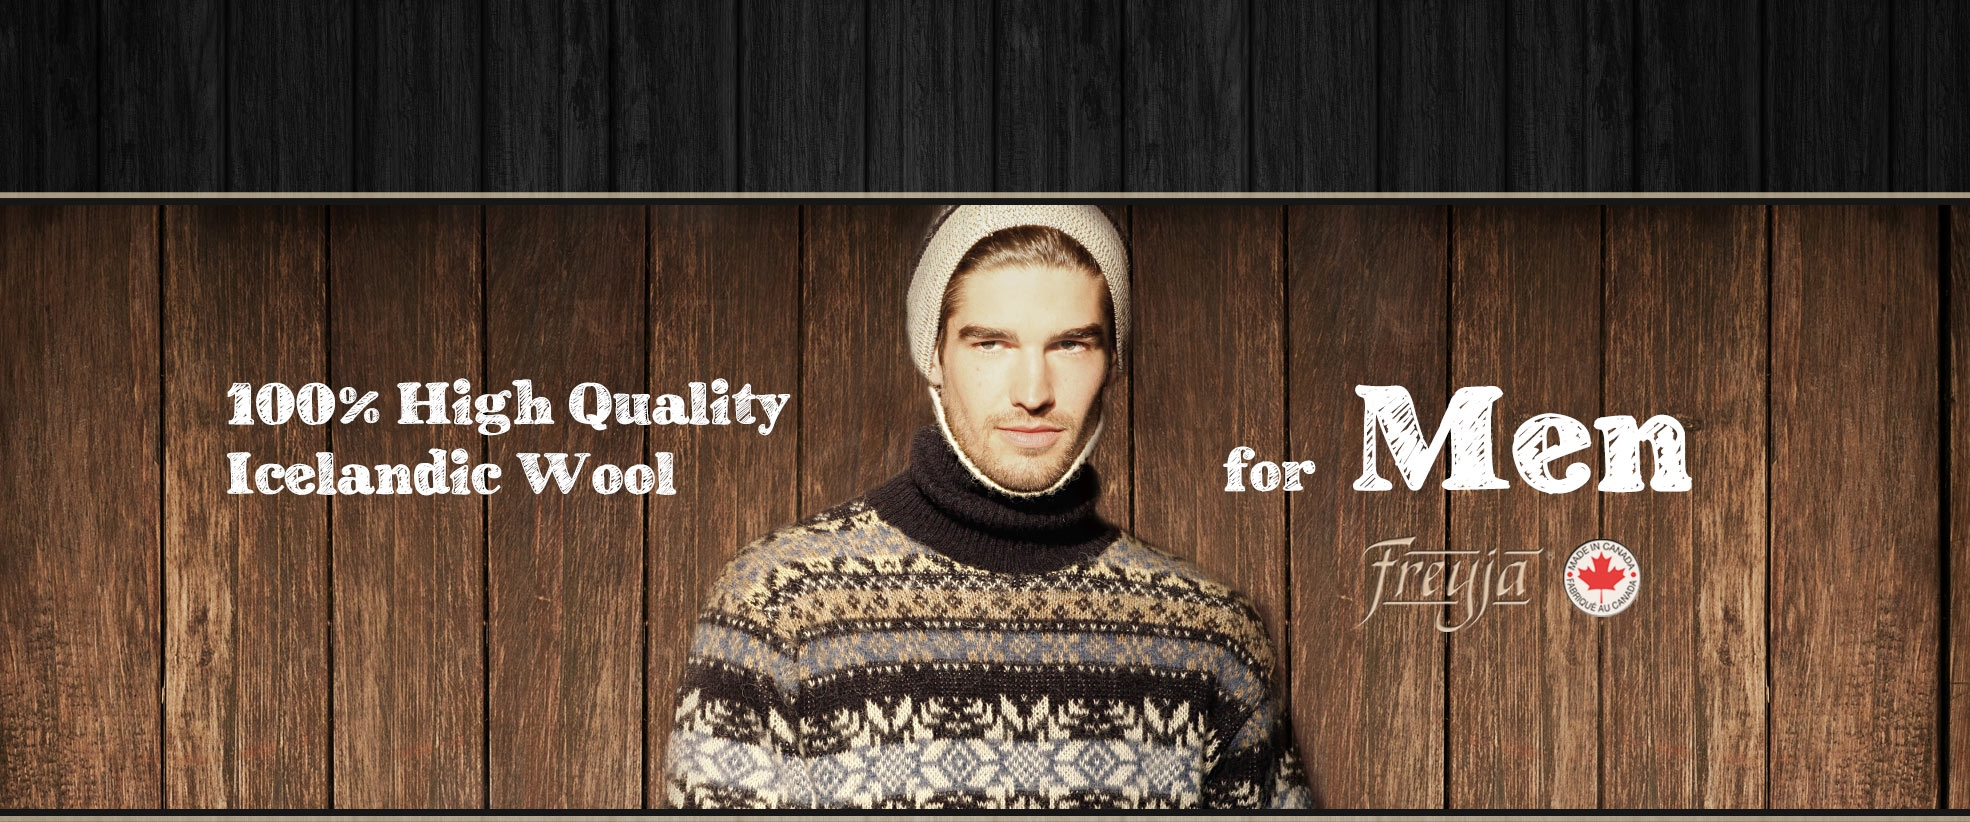 Buy Wool Clothing - icelandic sweaters. Wool sweaters for Men ... a6459fd98